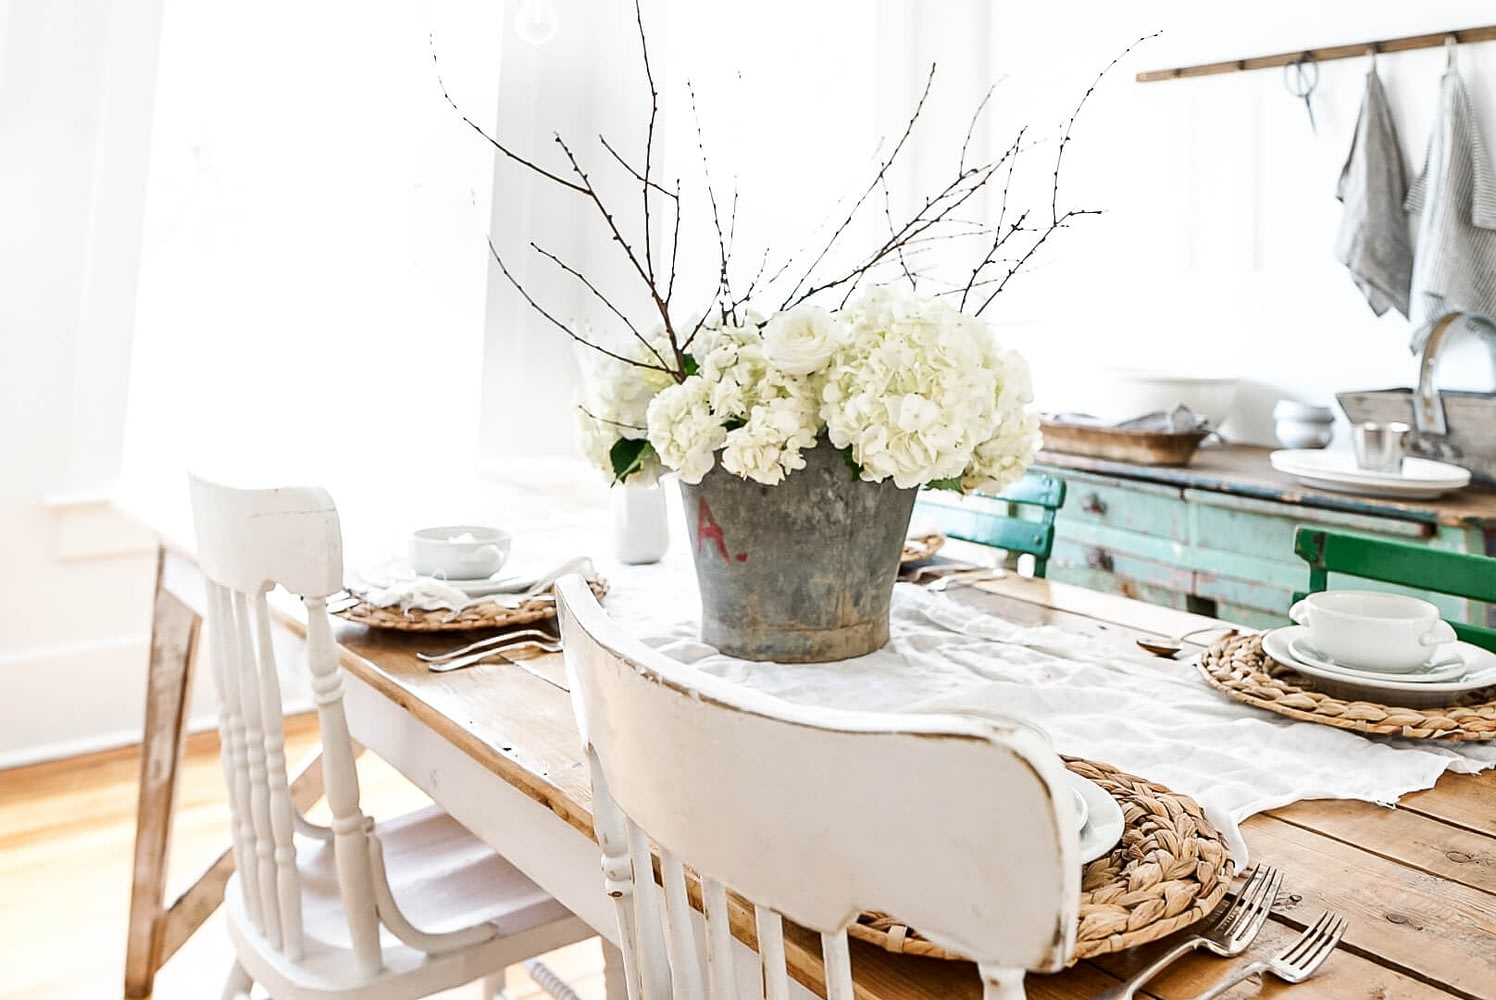 hydrangeas and white decor on a table